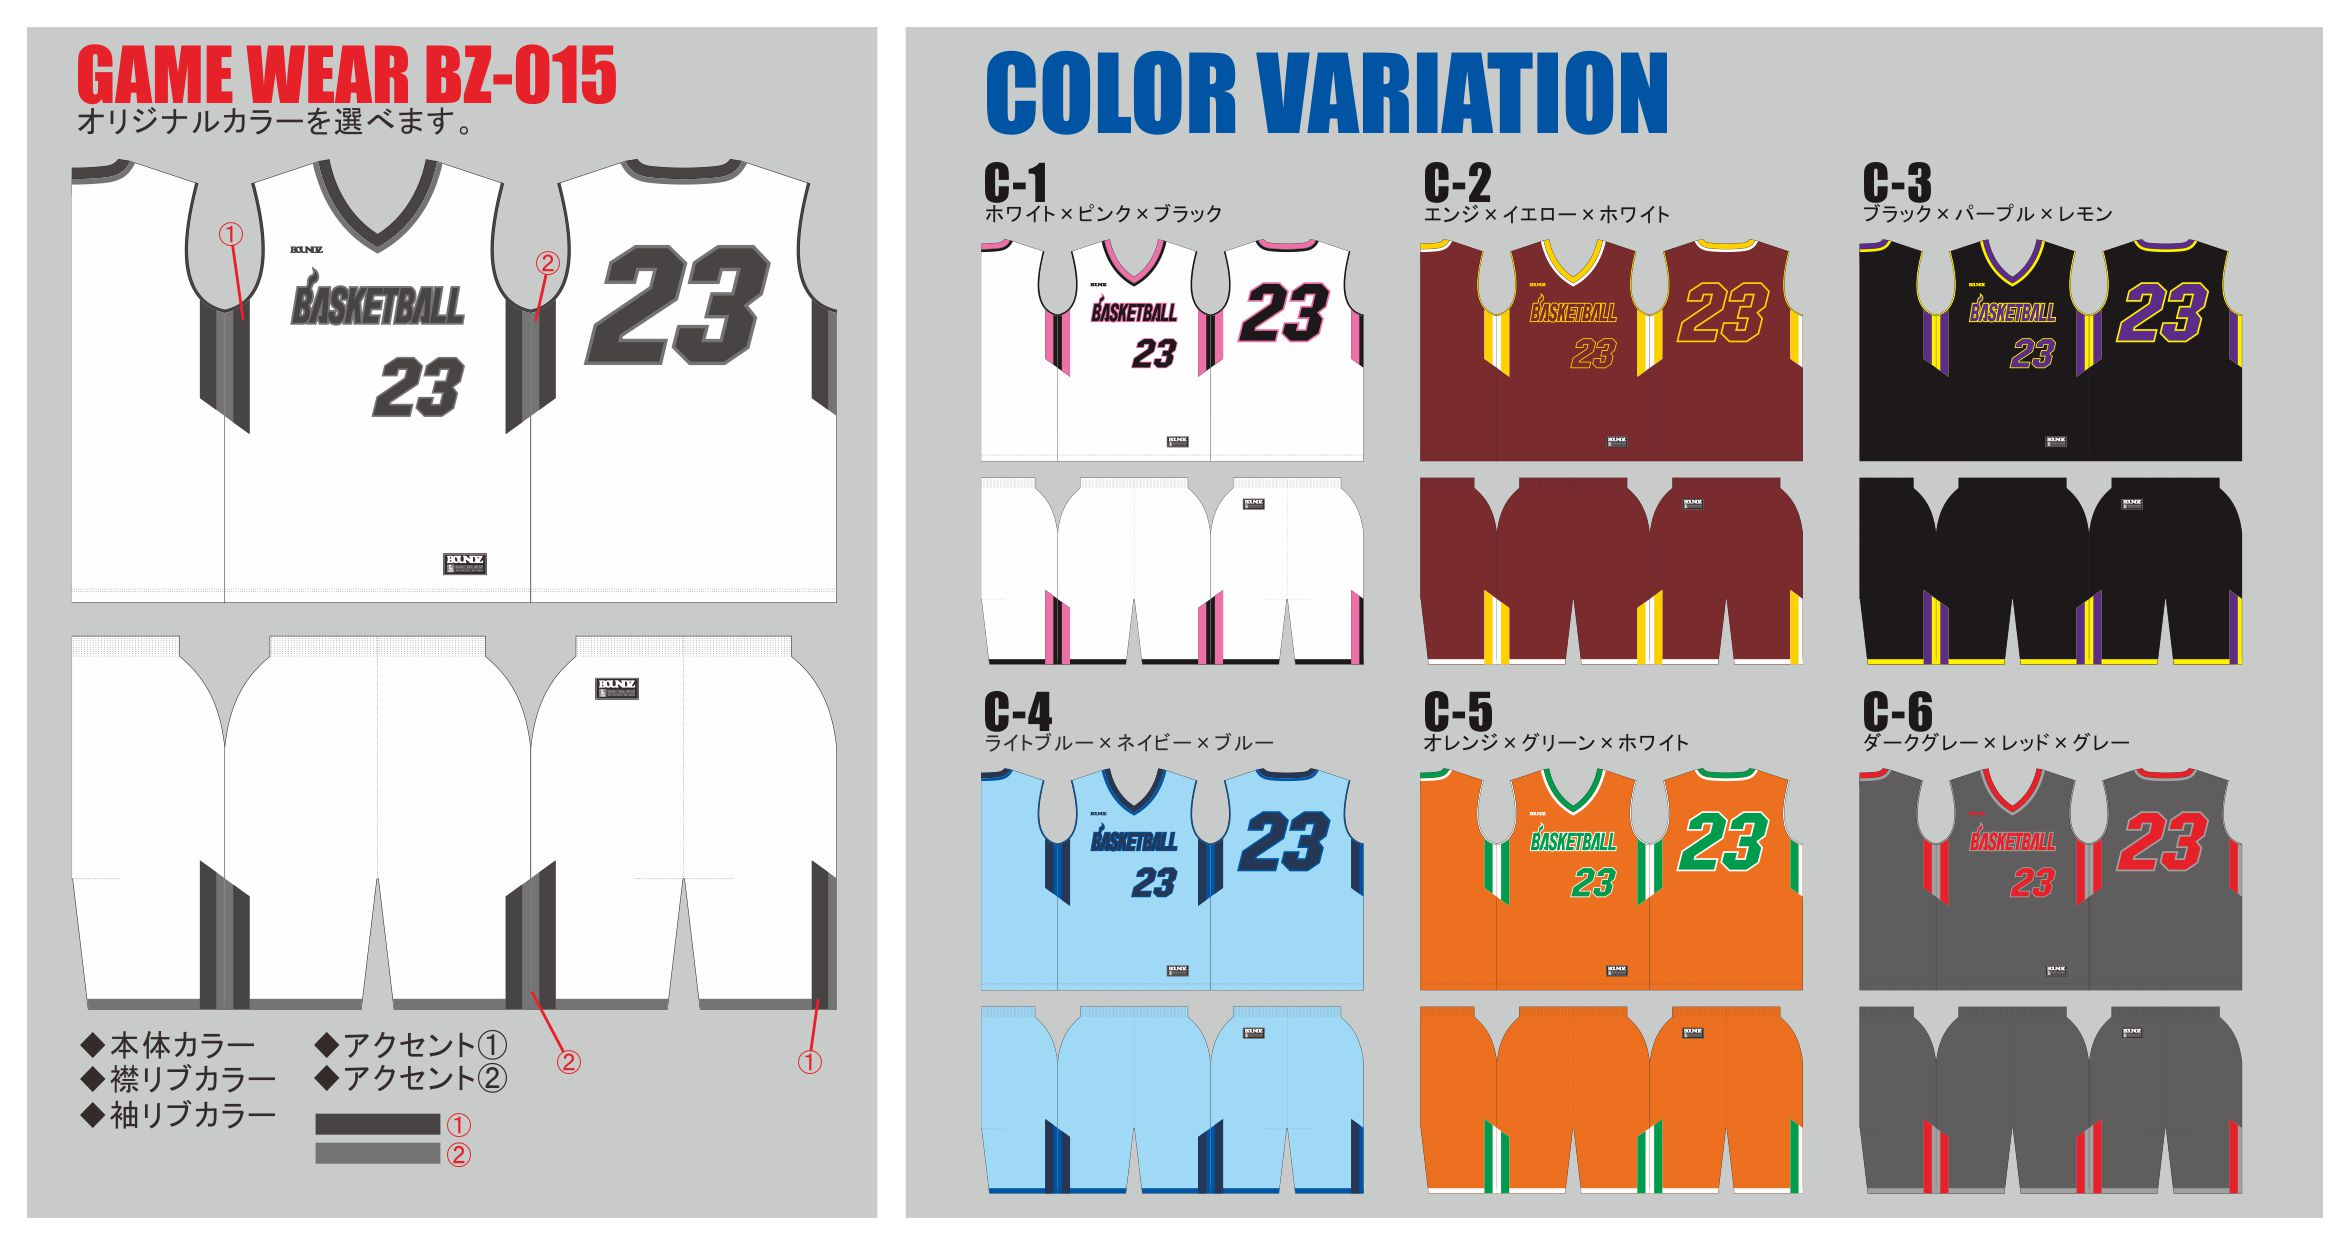 GAME_WEAR_BZ015_color